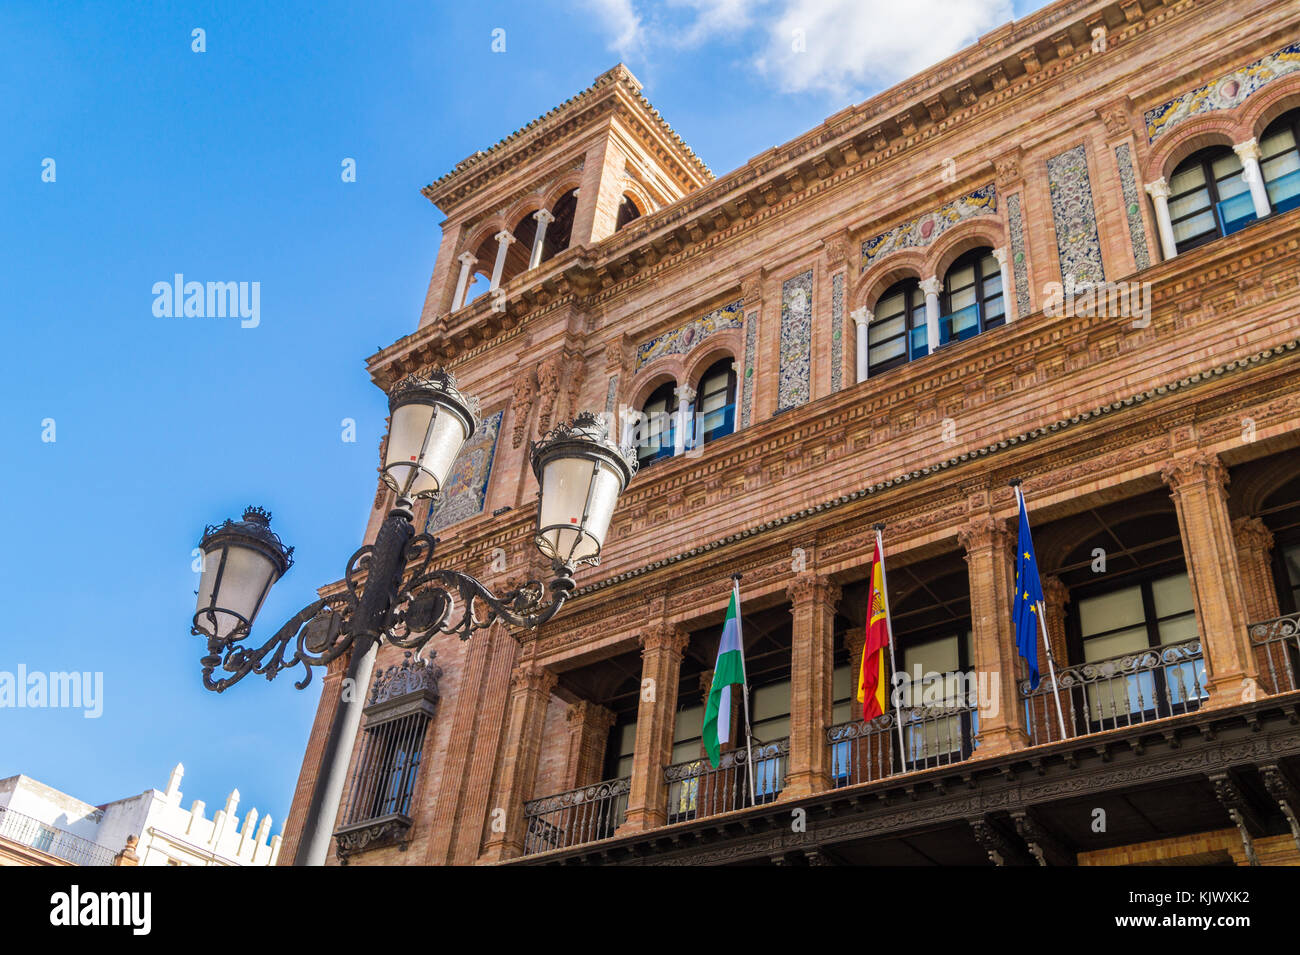 Government building in Spanish Renaissance revival architectural style, Seville, Andalucia, Spain - Stock Image